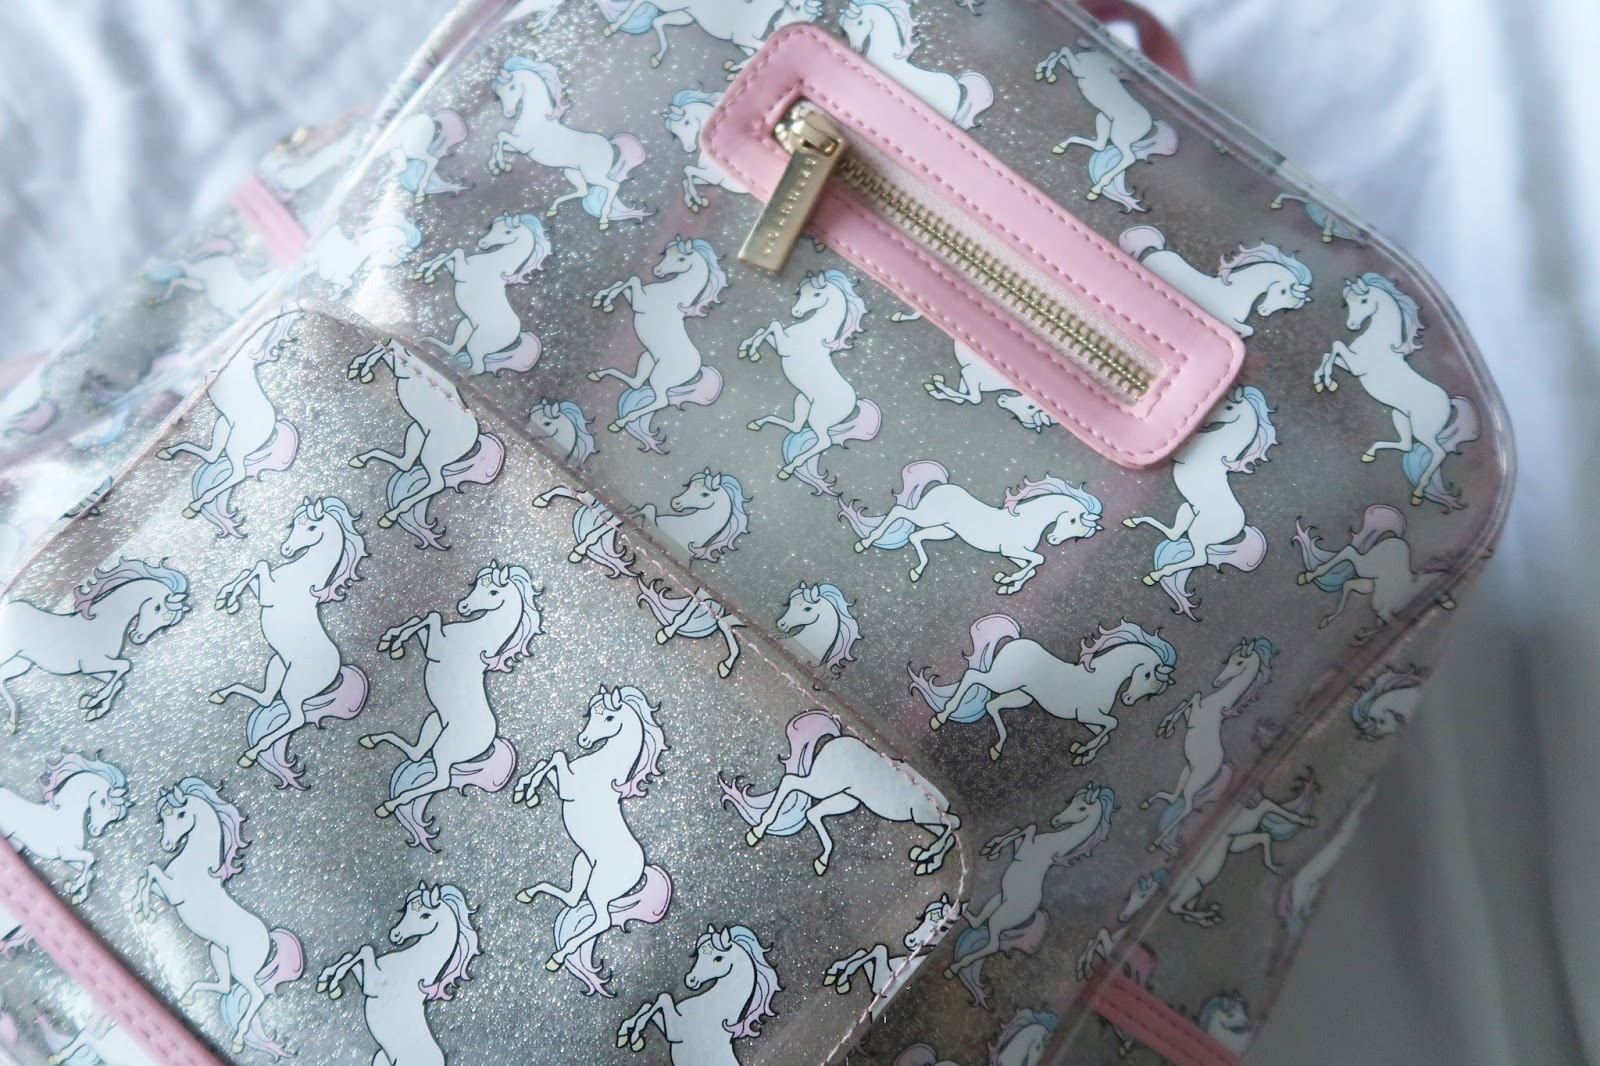 4e77920459 As I have received many compliments on my various bags both online and IRL,  I thought I would finally photograph them all and make a post sharing my  pretty ...